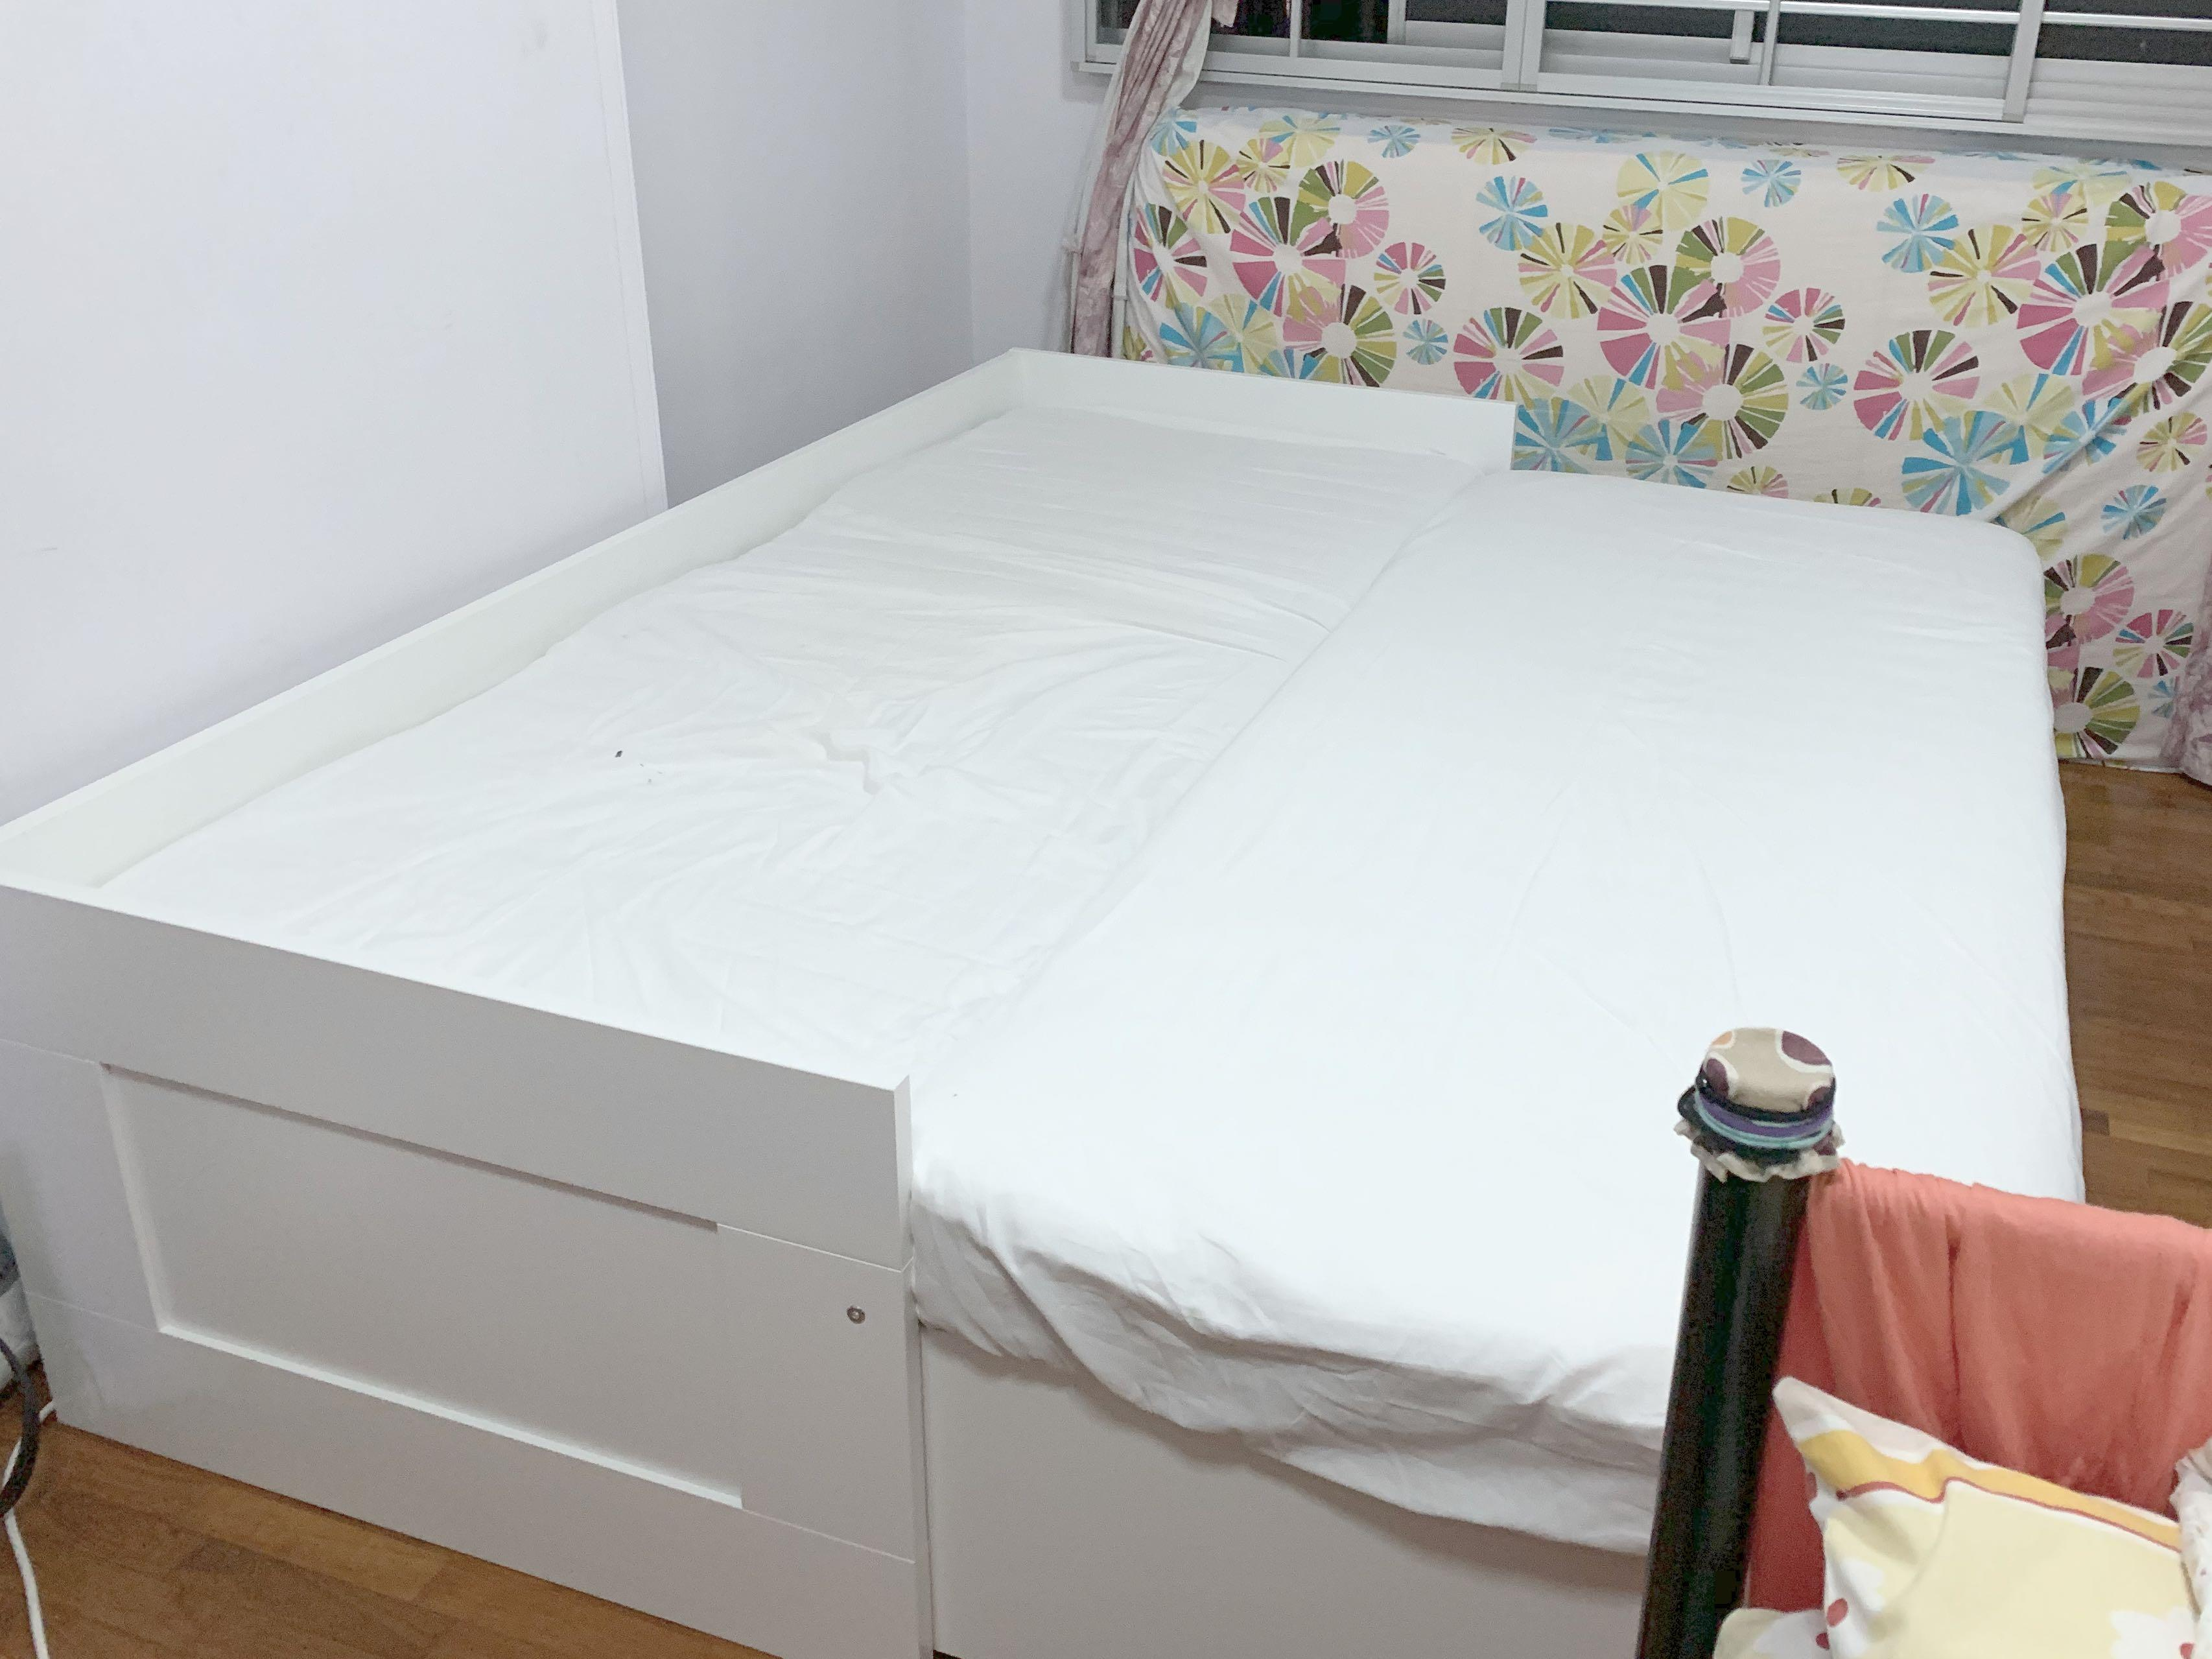 Ikea Brimnes Day Bed Frame With Mattresses Furniture Beds Mattresses On Carousell